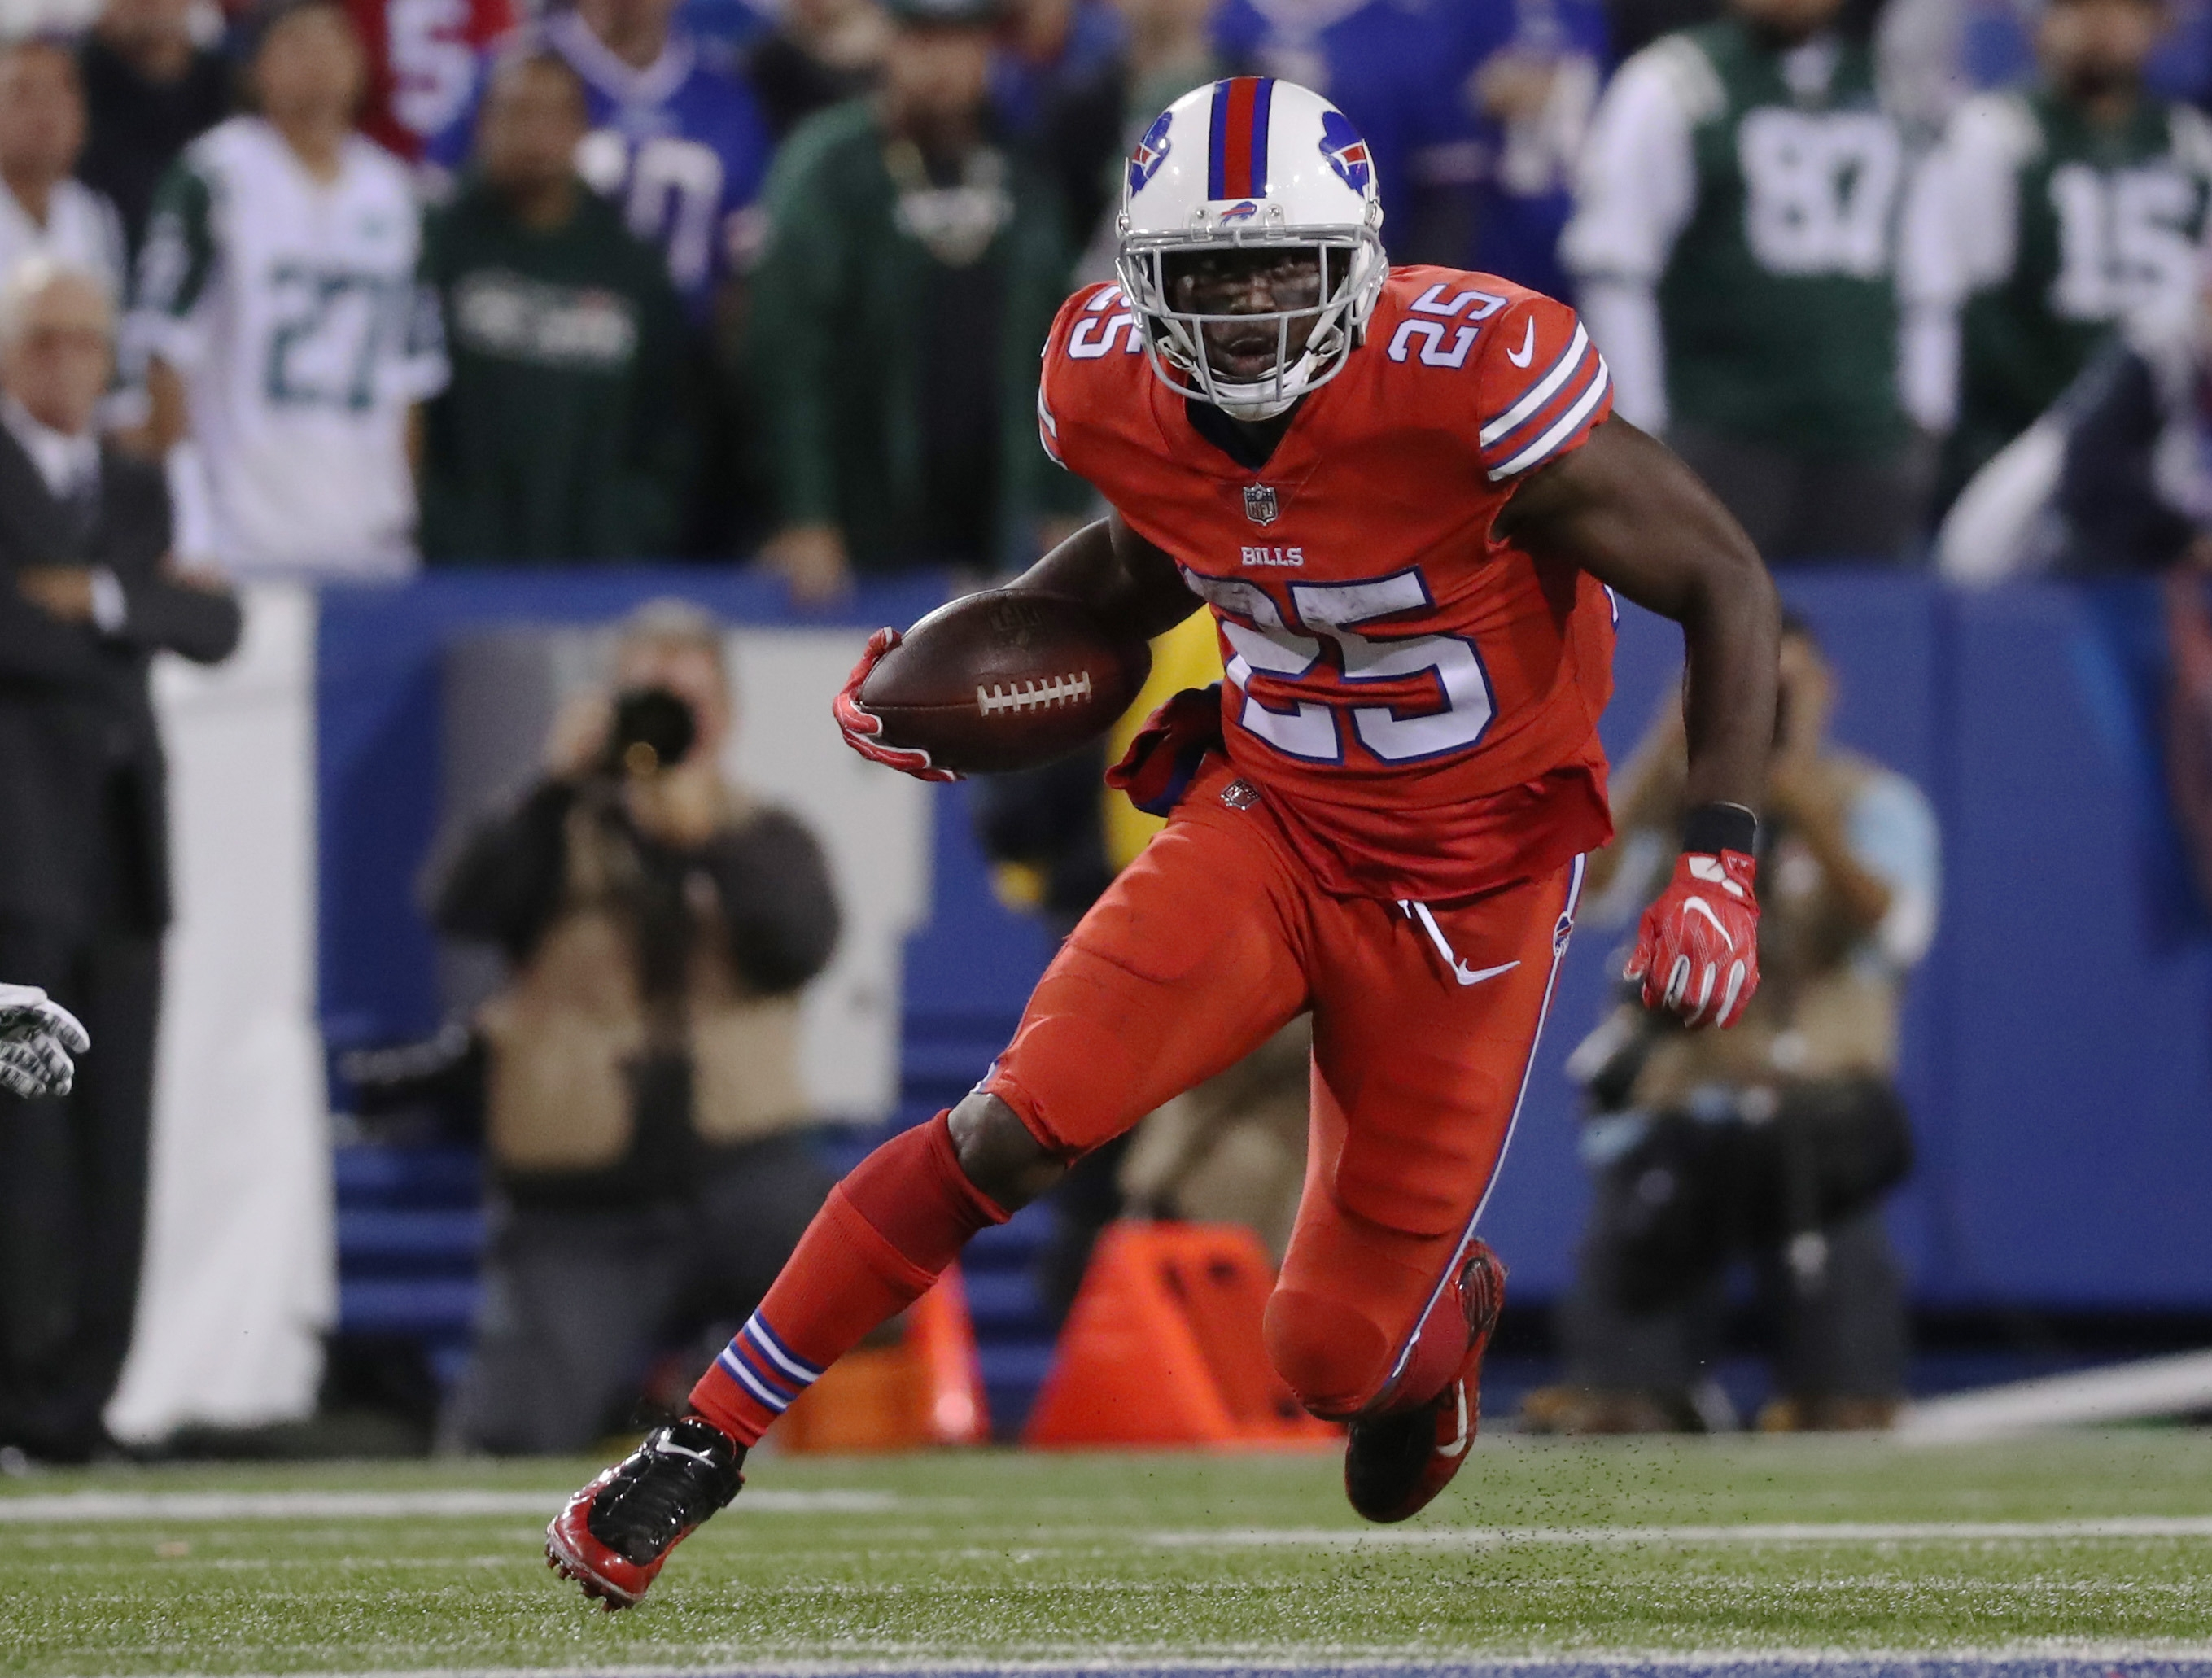 Buffalo Bills running back LeSean McCoy runs the ball against the New York Jets during the fourth quarter at New Era Field in Orchard Park, N.Y. on Thursday, Sept. 15, 2016.  (James P. McCoy/ Buffalo News)